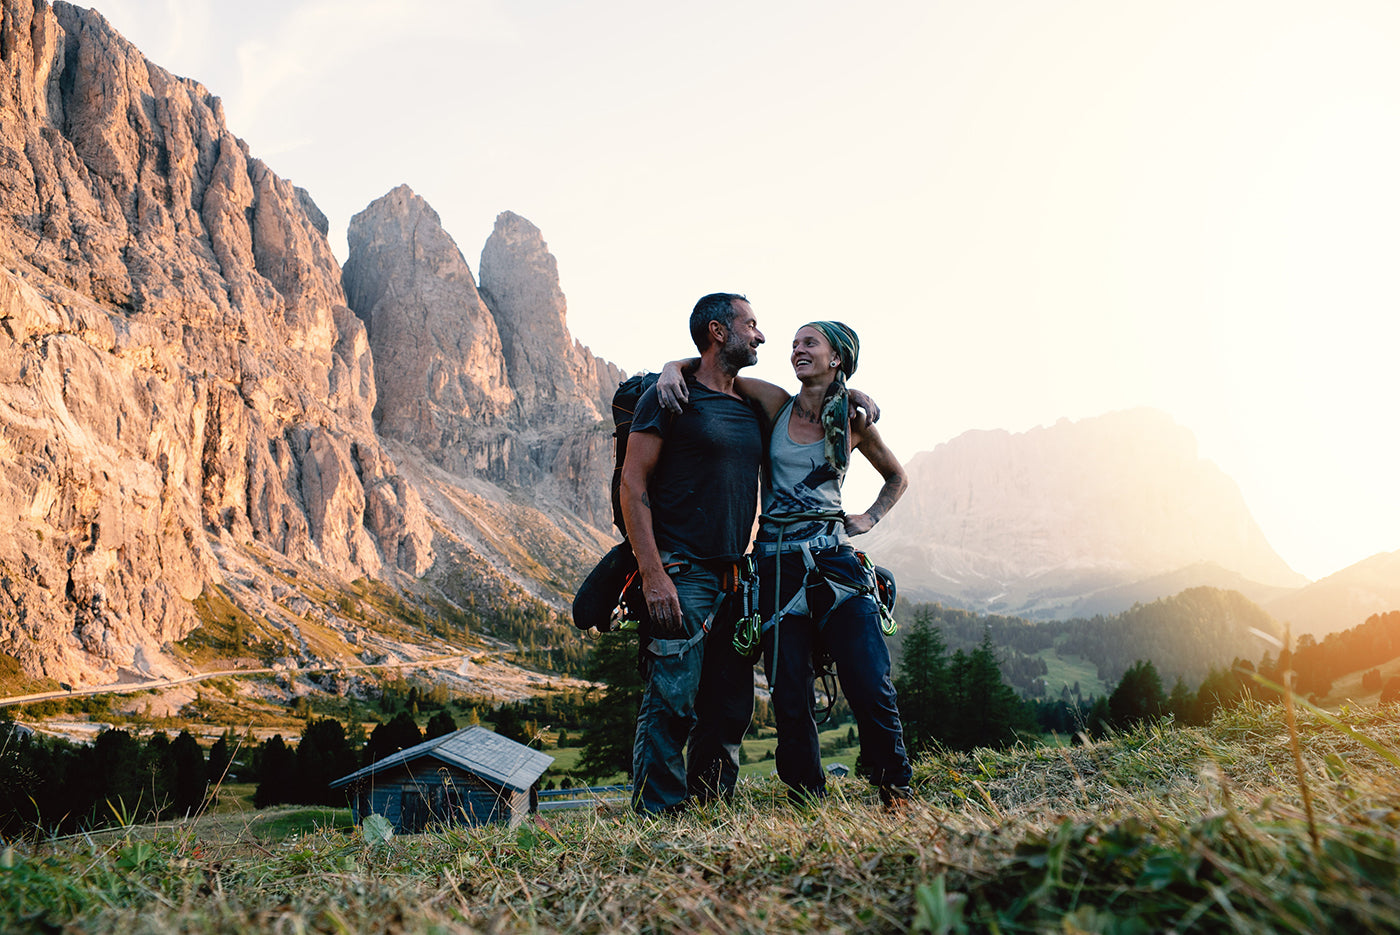 Kai Branss and his partner Julie posing for a picture outdoors in front of mountains on their travels to Corsica. (Photo: Kai Branss)